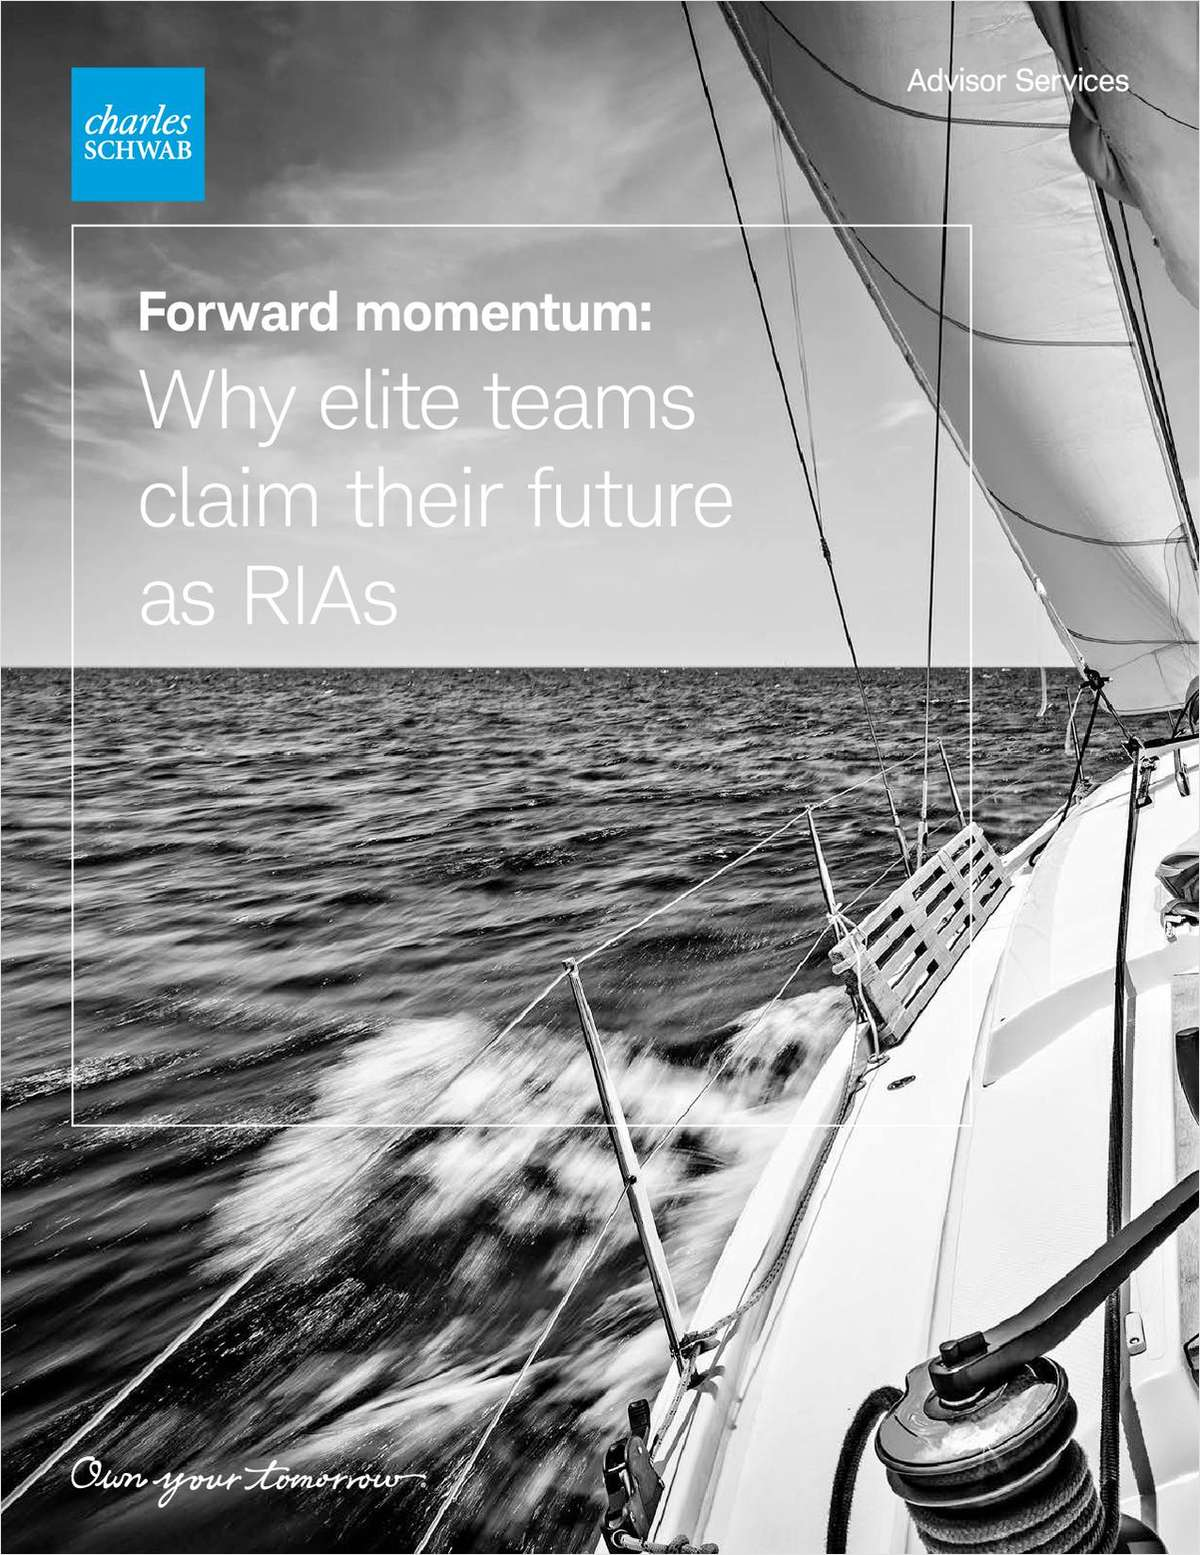 The RIA model has momentum for a reason